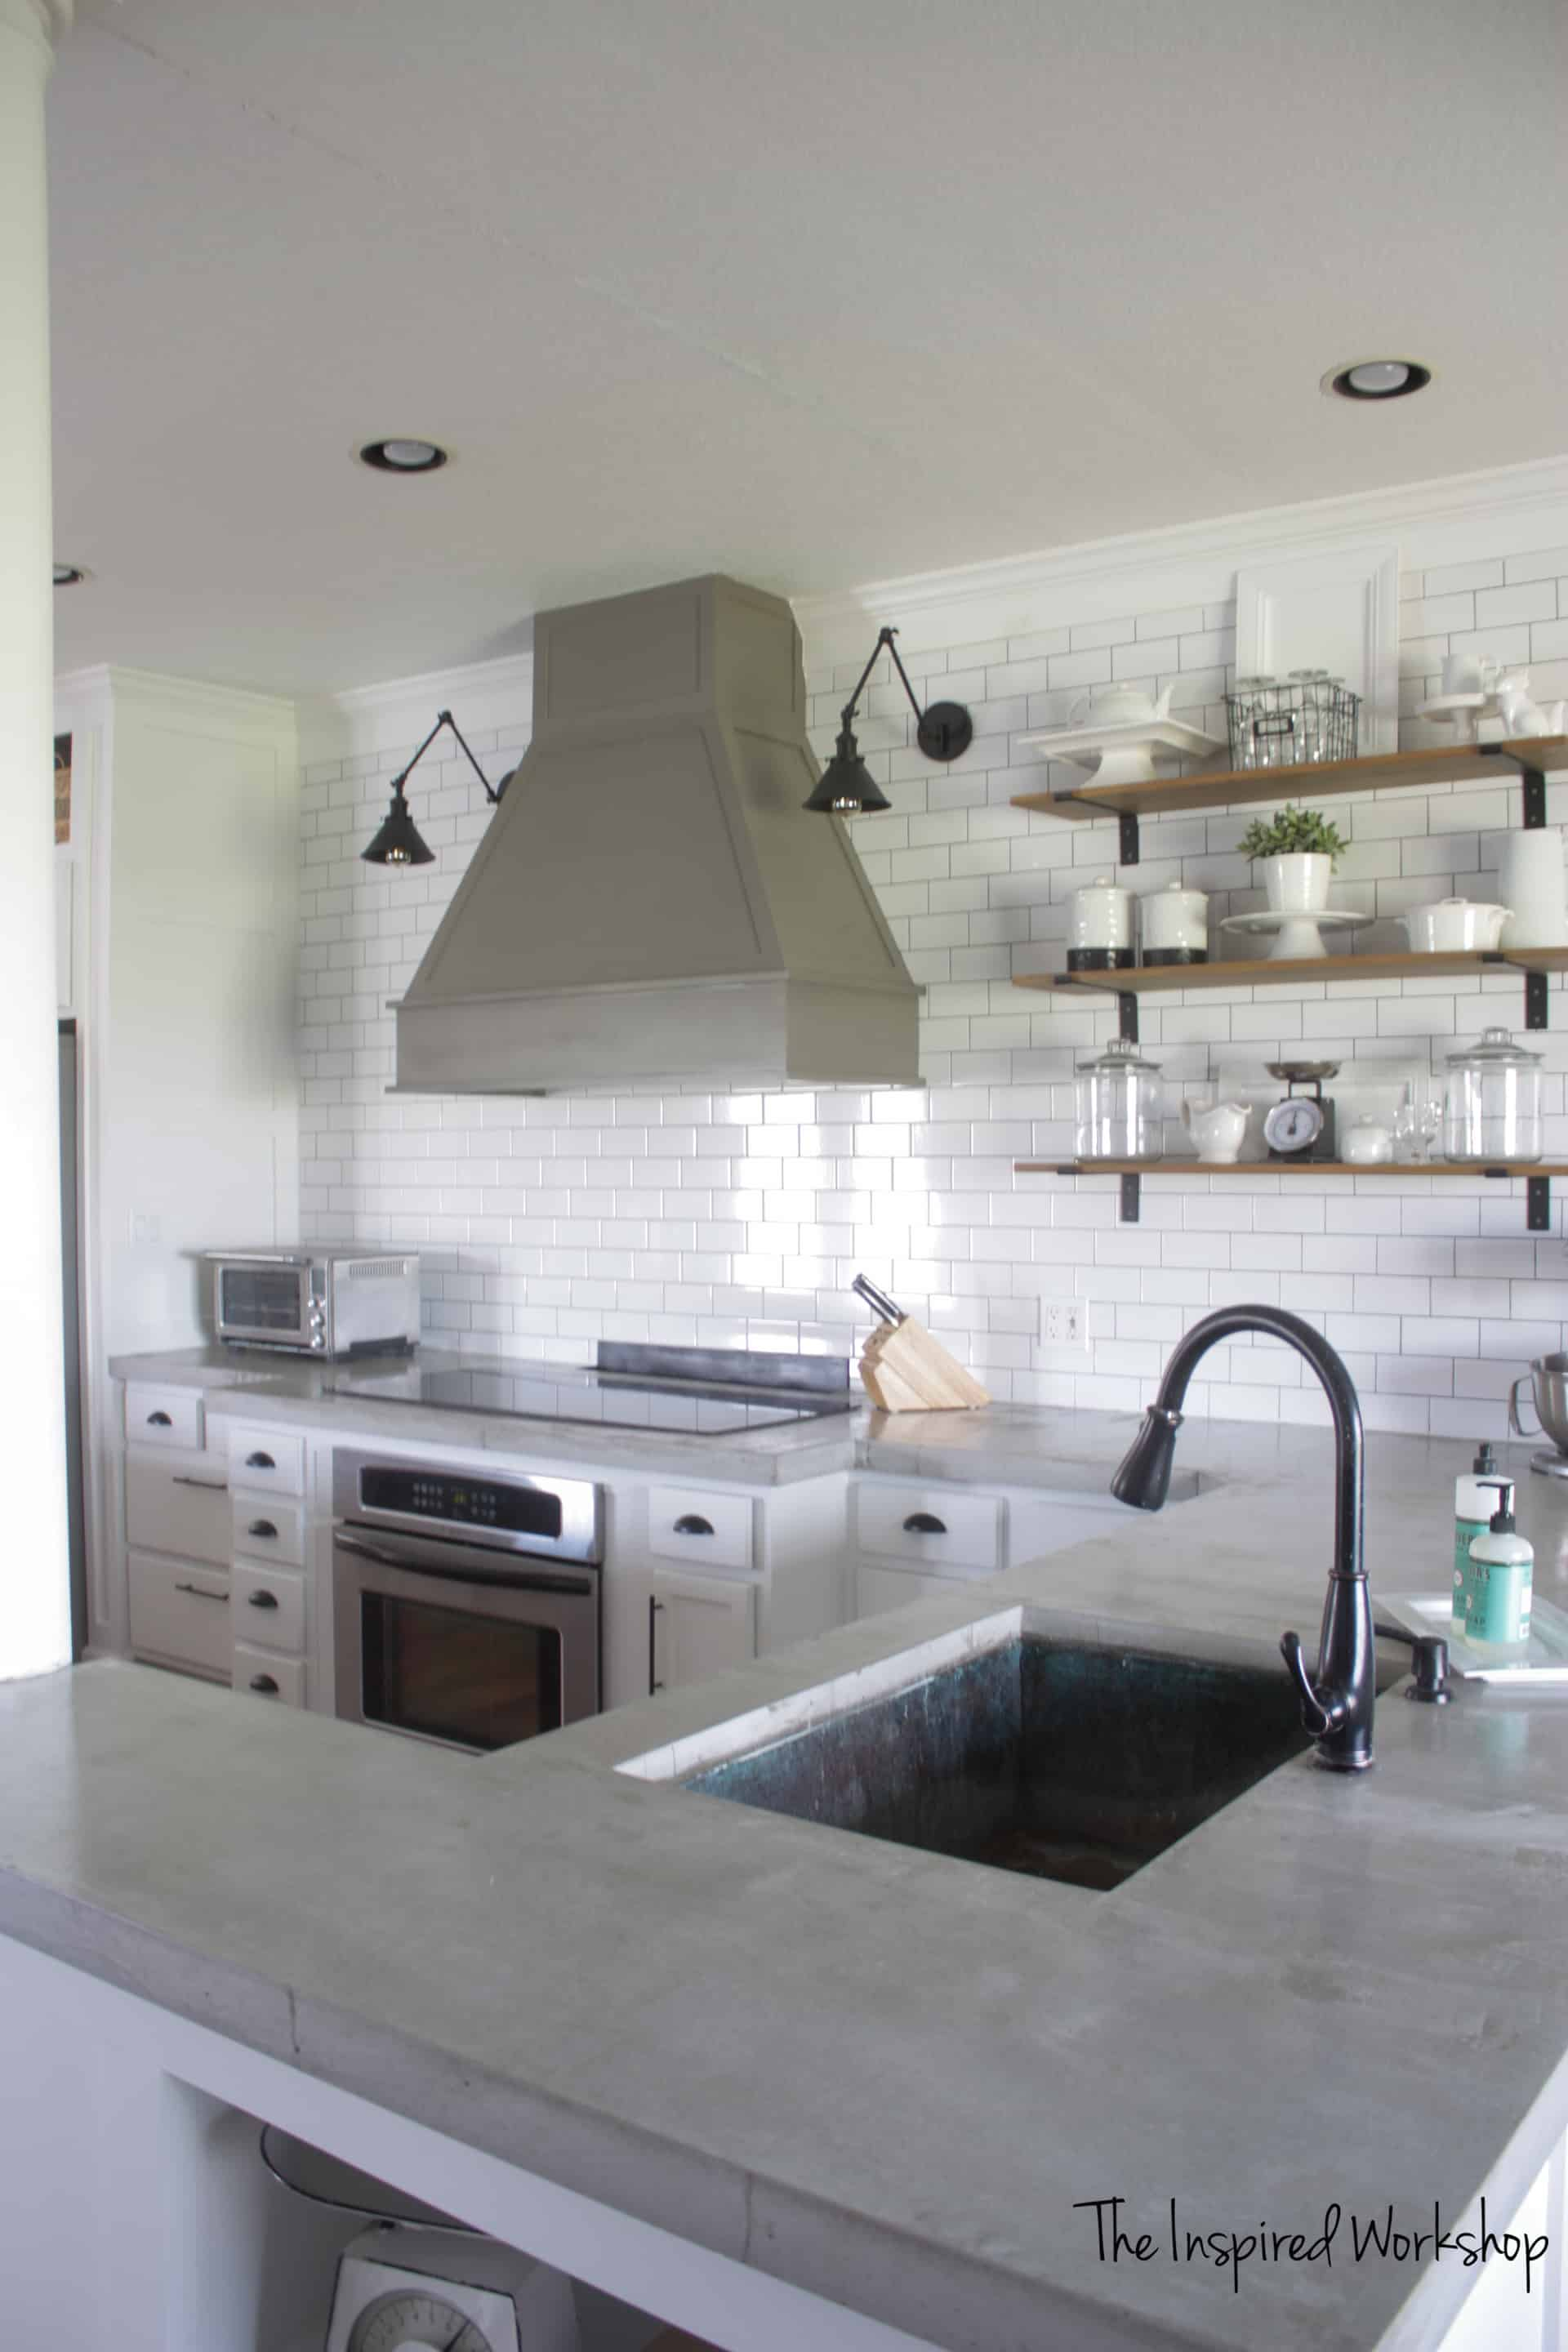 Making Your Own Concrete Countertop Pour In Place Concrete Countertops The Inspired Workshop